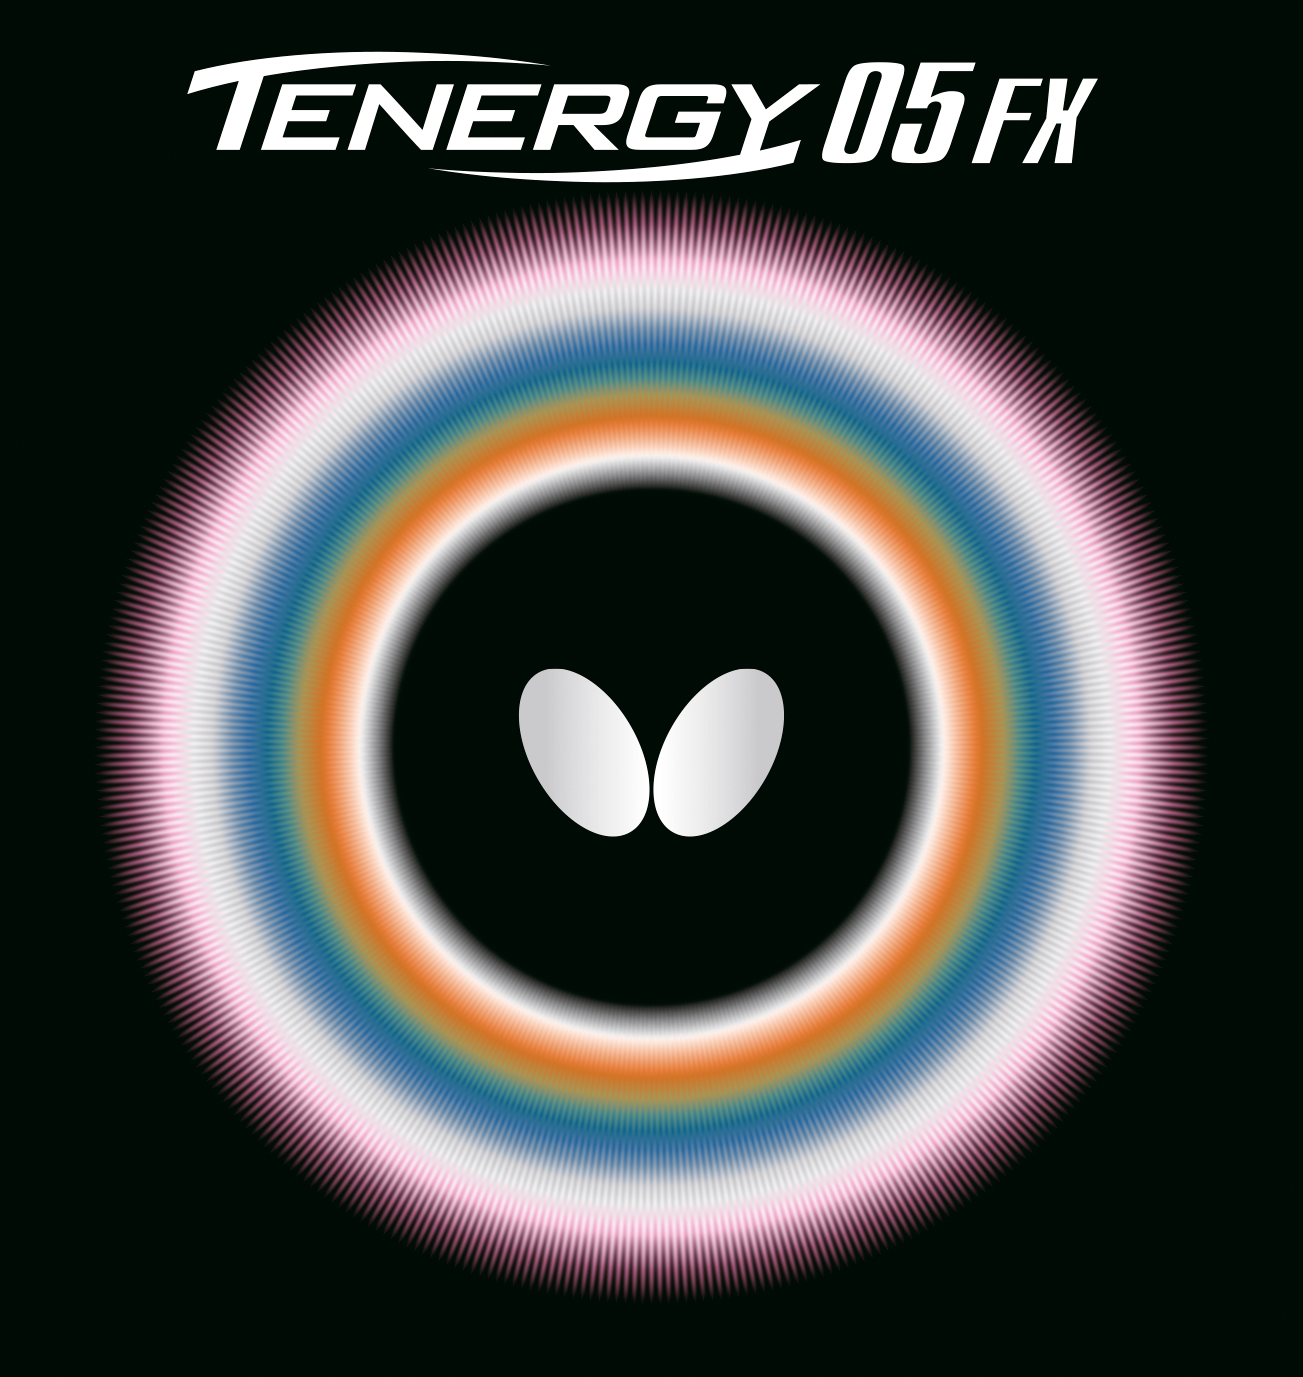 BUTTERFLY - potah TENERGY 05 FX